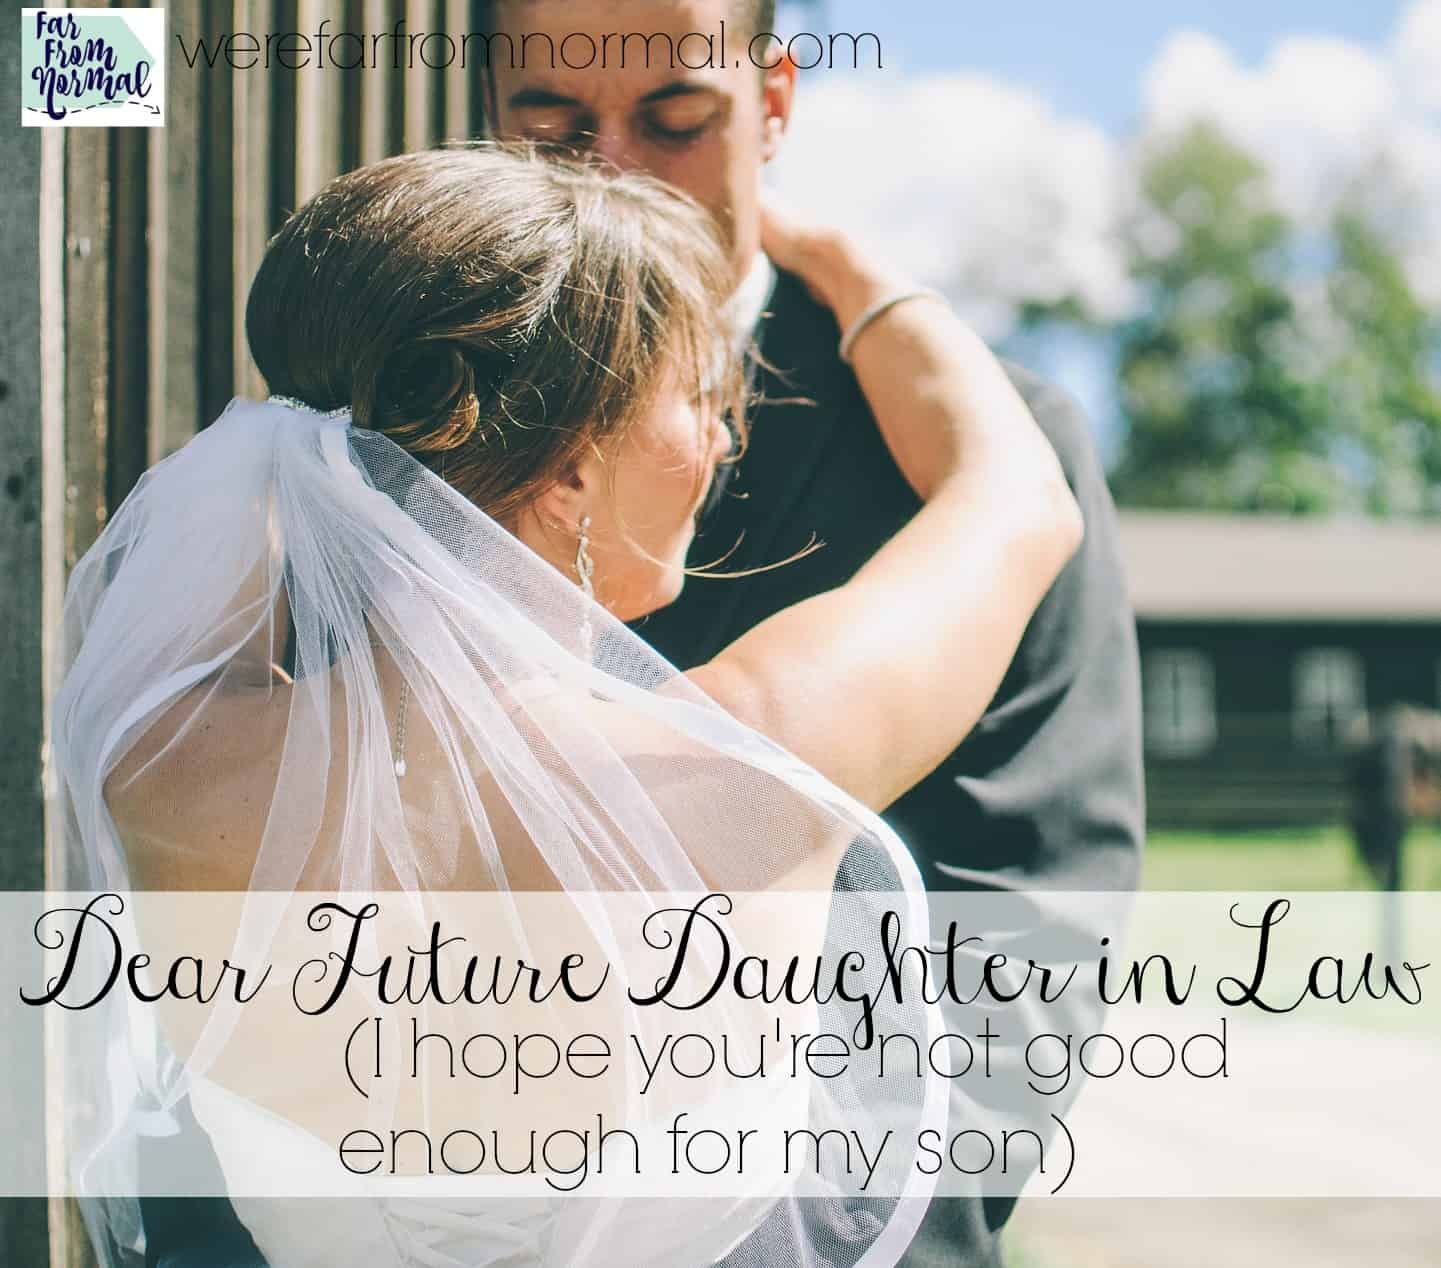 Dear Future Daughter In Law (I hope you're not good enough for my son)